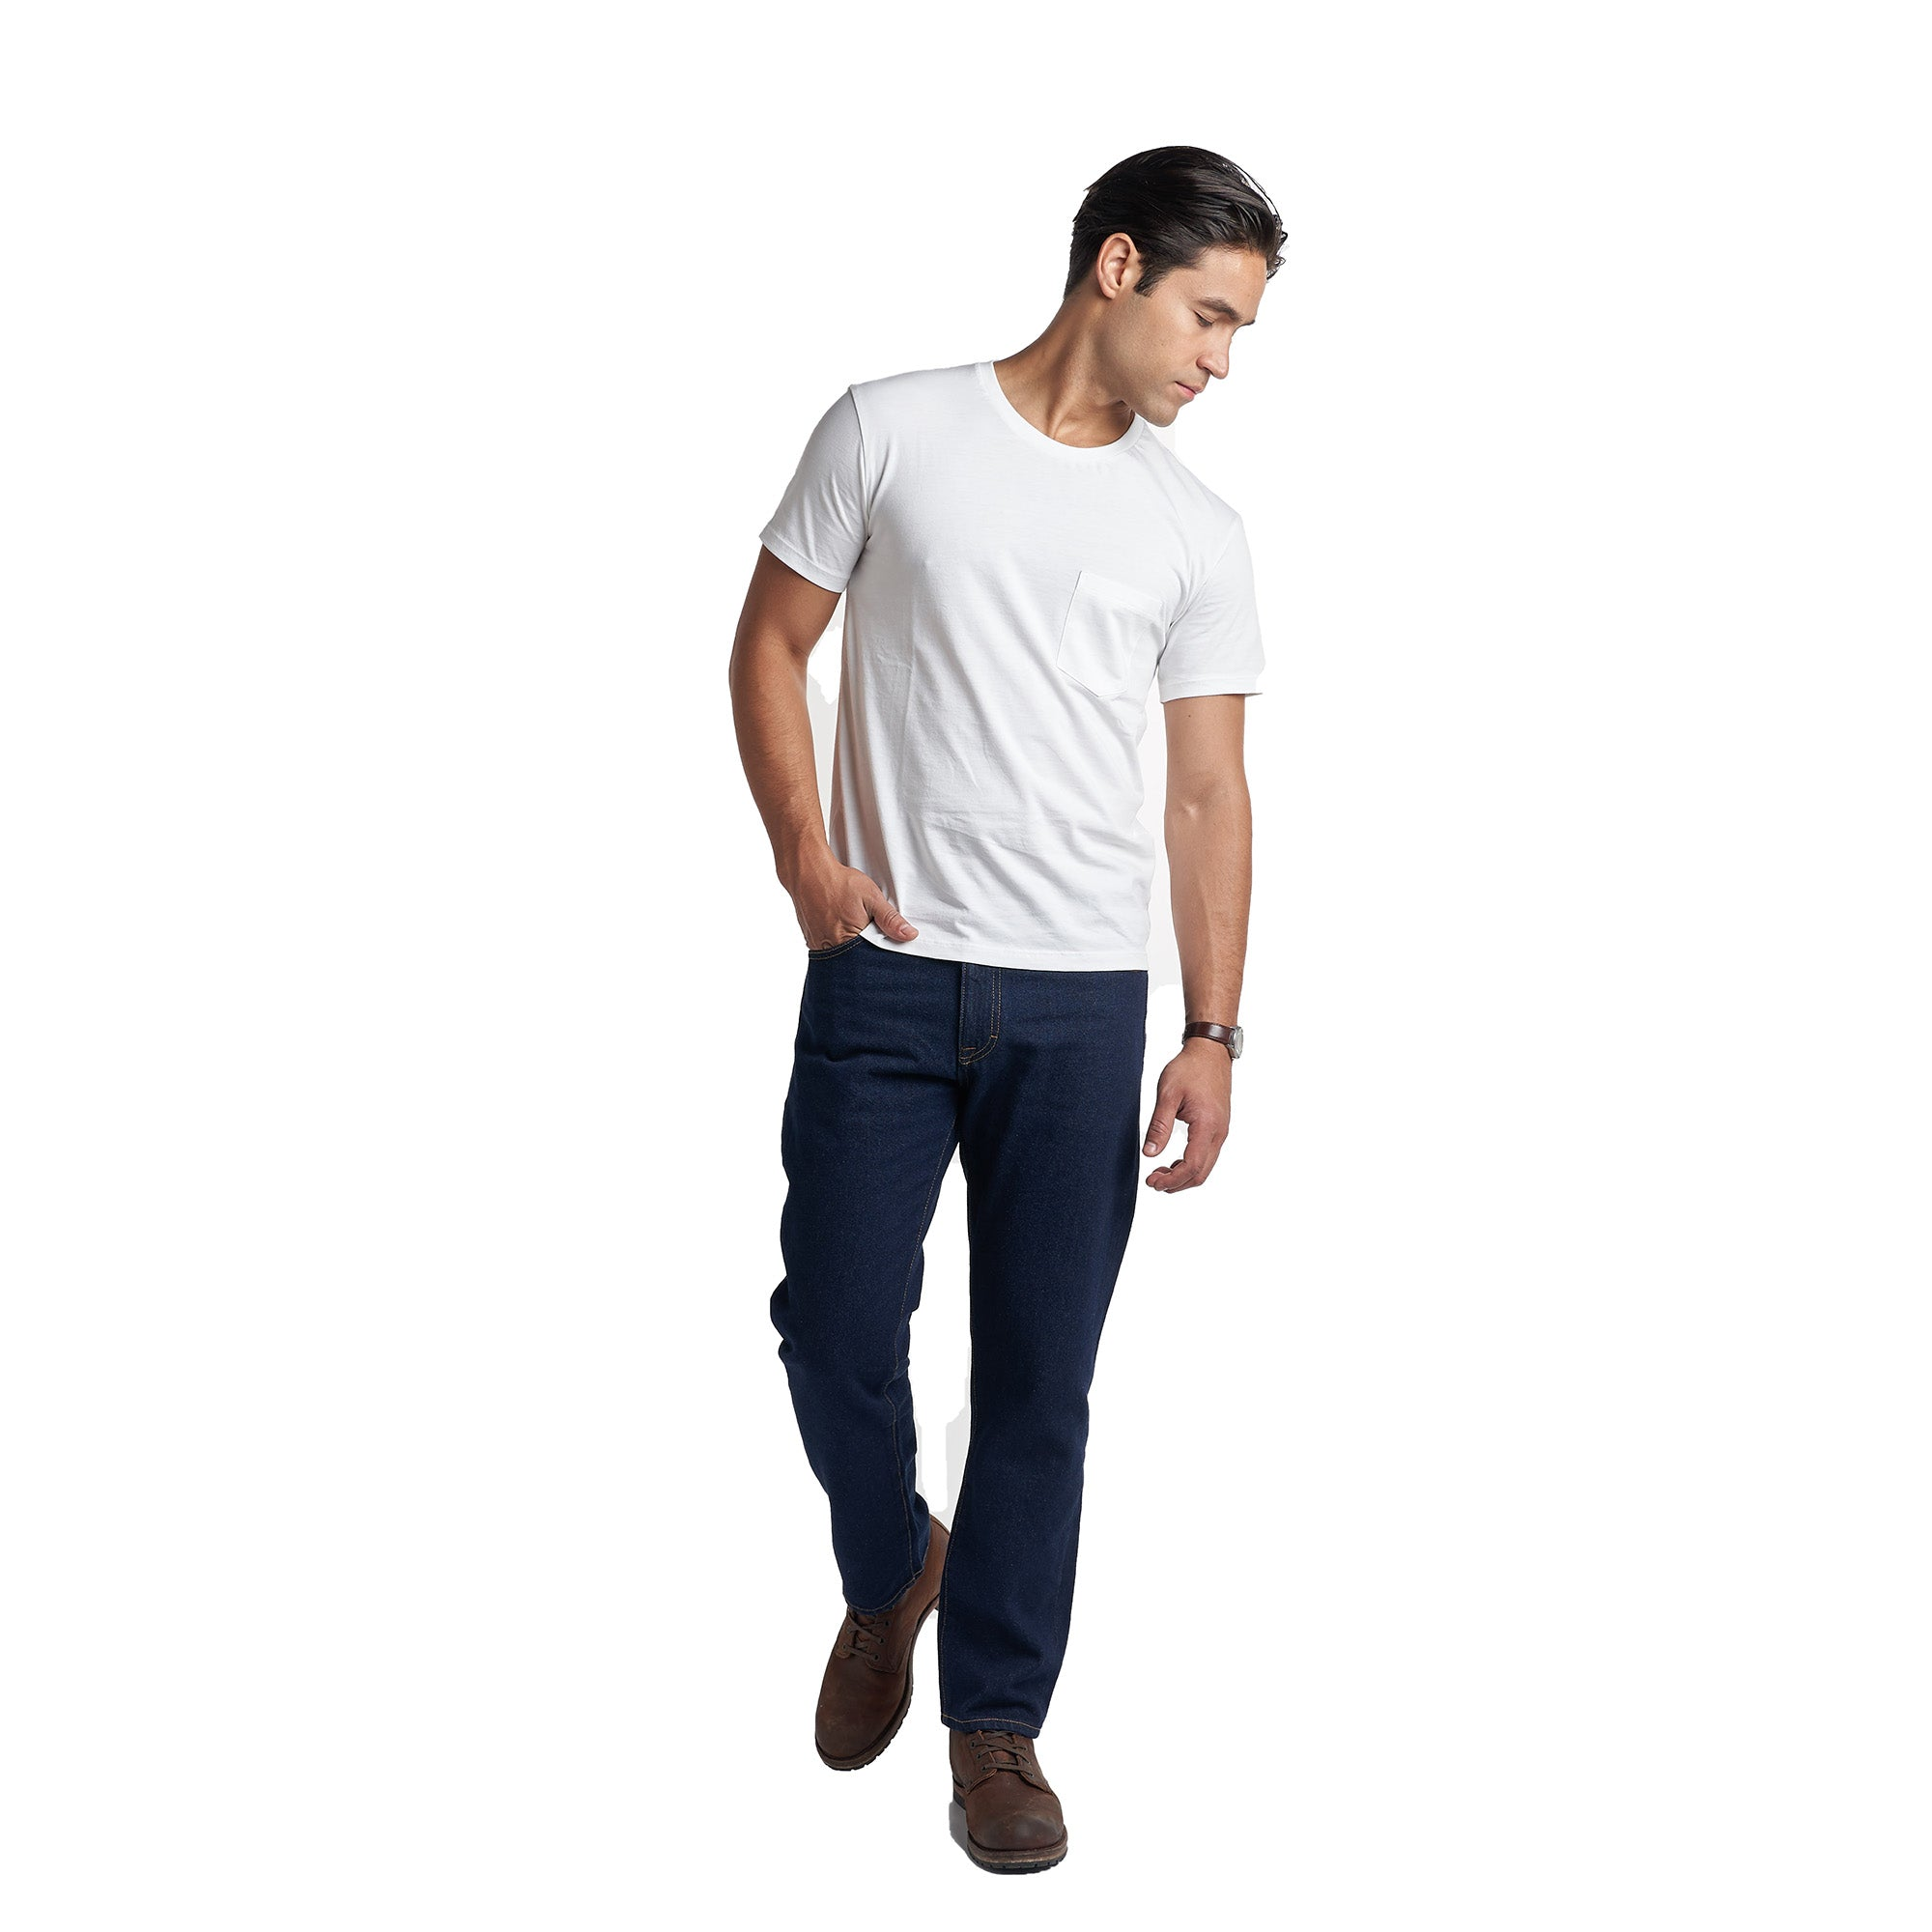 PMNYC Jeans Classic Fit - Dark Indigo Wash